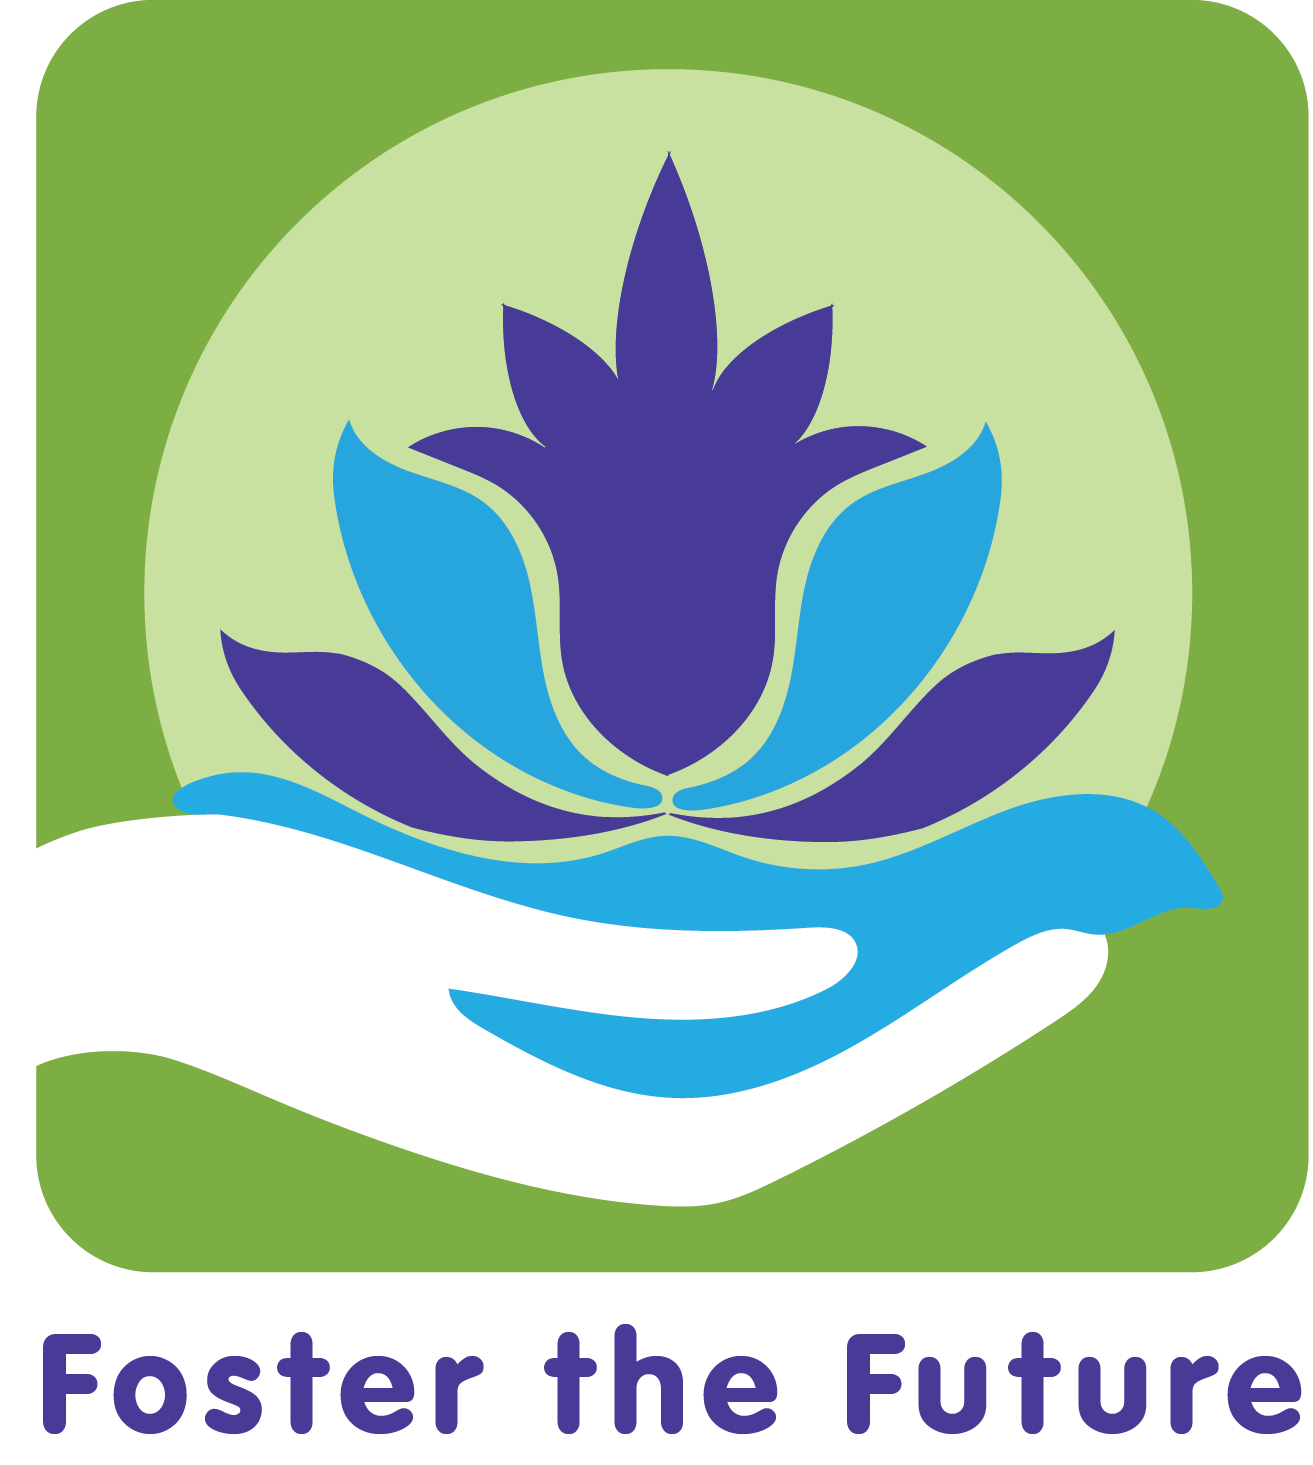 logo-fosterthefuture